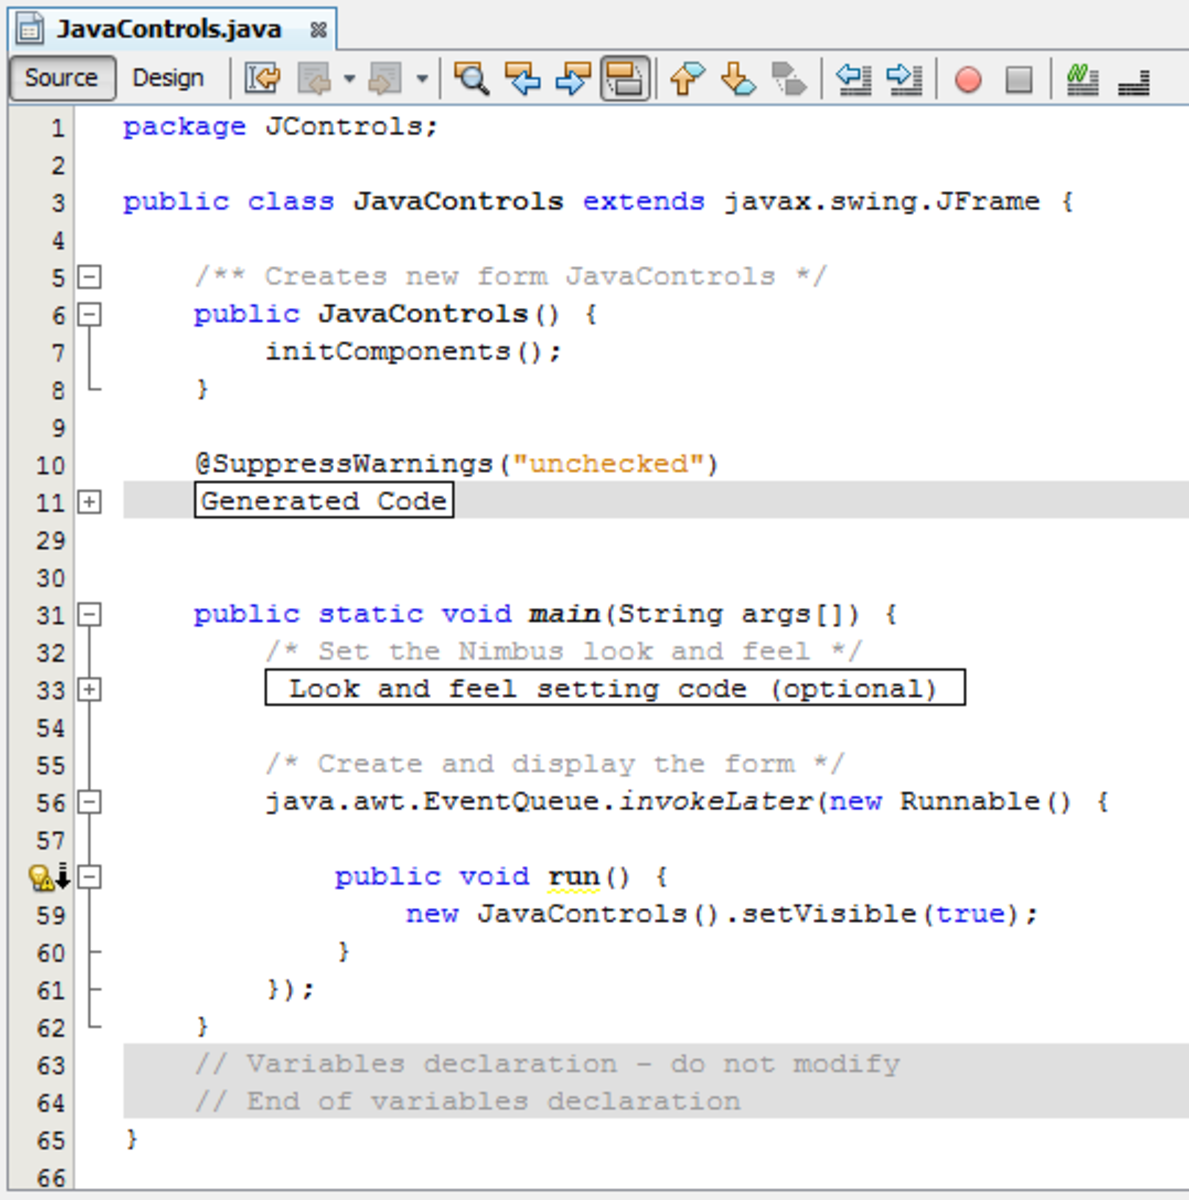 programming-in-java-netbeans-a-step-by-step-tutorial-for-beginners-lesson-36